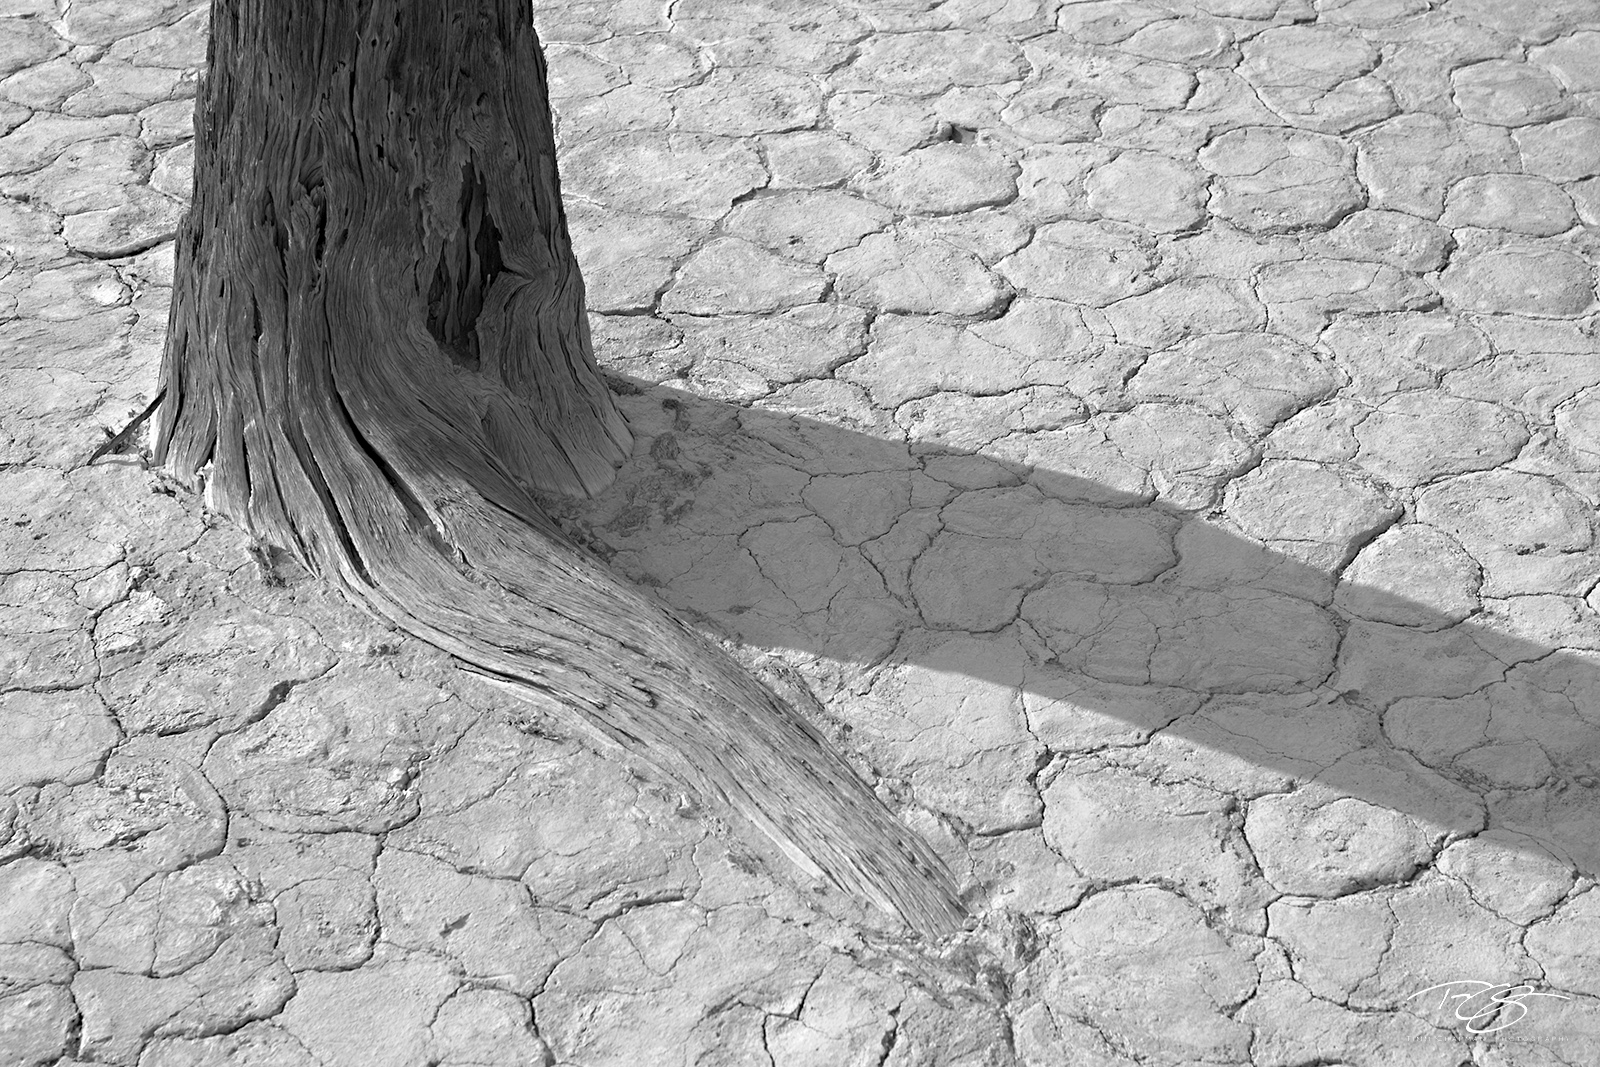 Namibia, coral sand dunes, black and white, monochrome, parched, cracked mud, camelthorn acacia, dead trees, dry deserted, namib desert, dead vlei, sossusvlei, world's tallest sand dunes, abstract, dr, photo